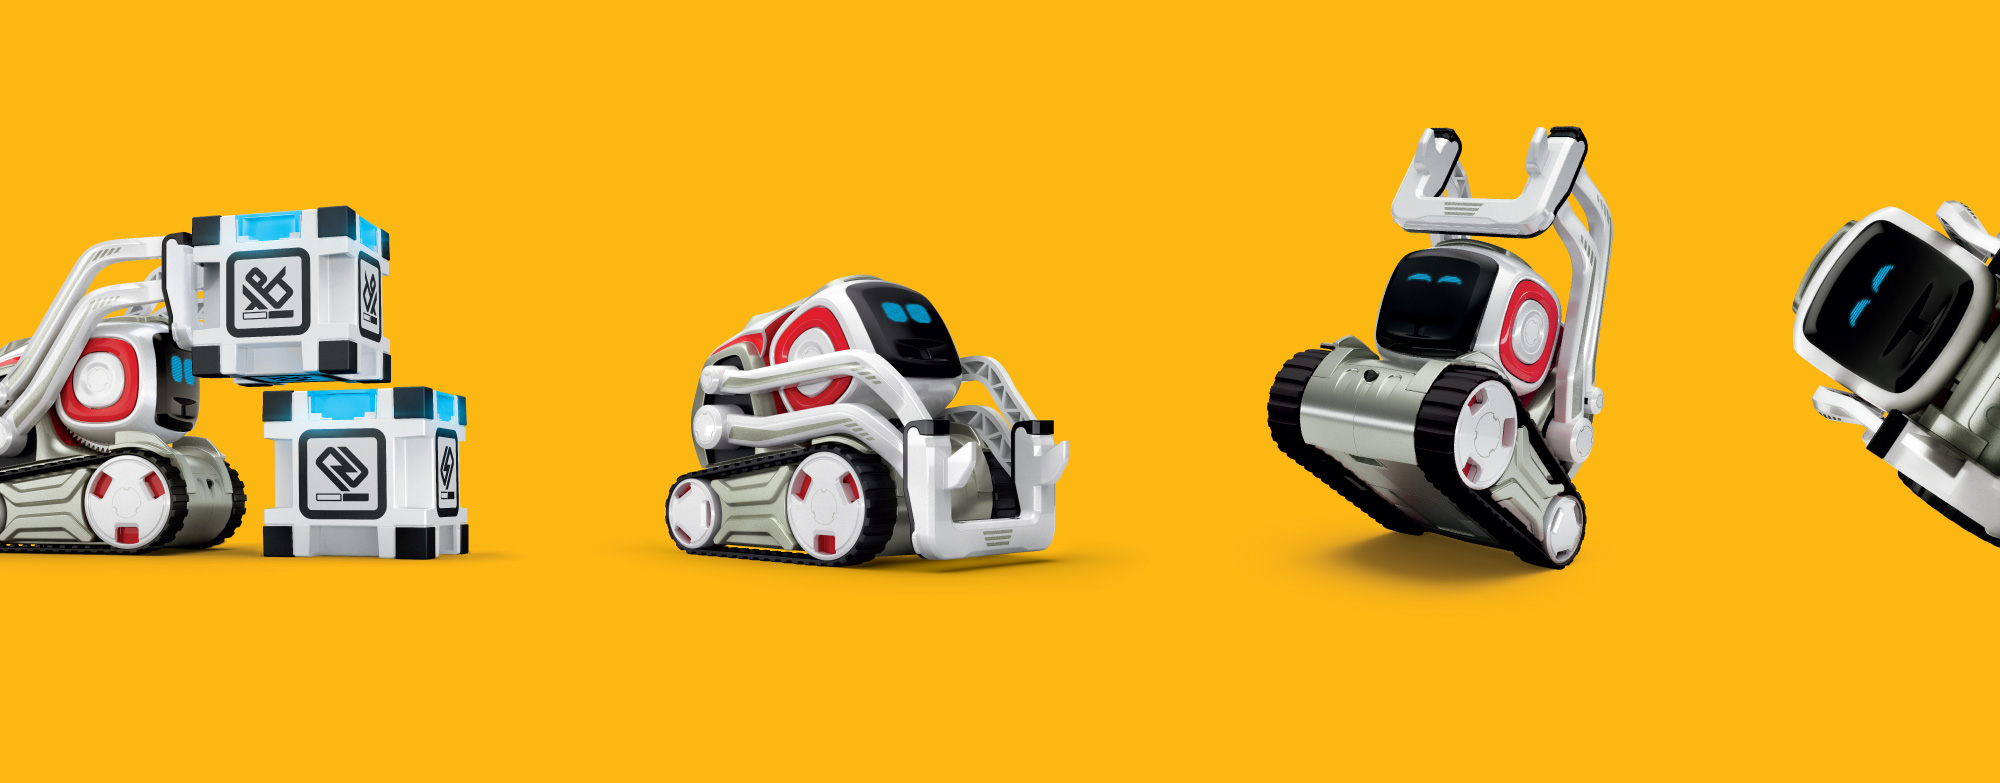 Digital product rengers of Anki Cozmo AI robot performing different tricks and emotions